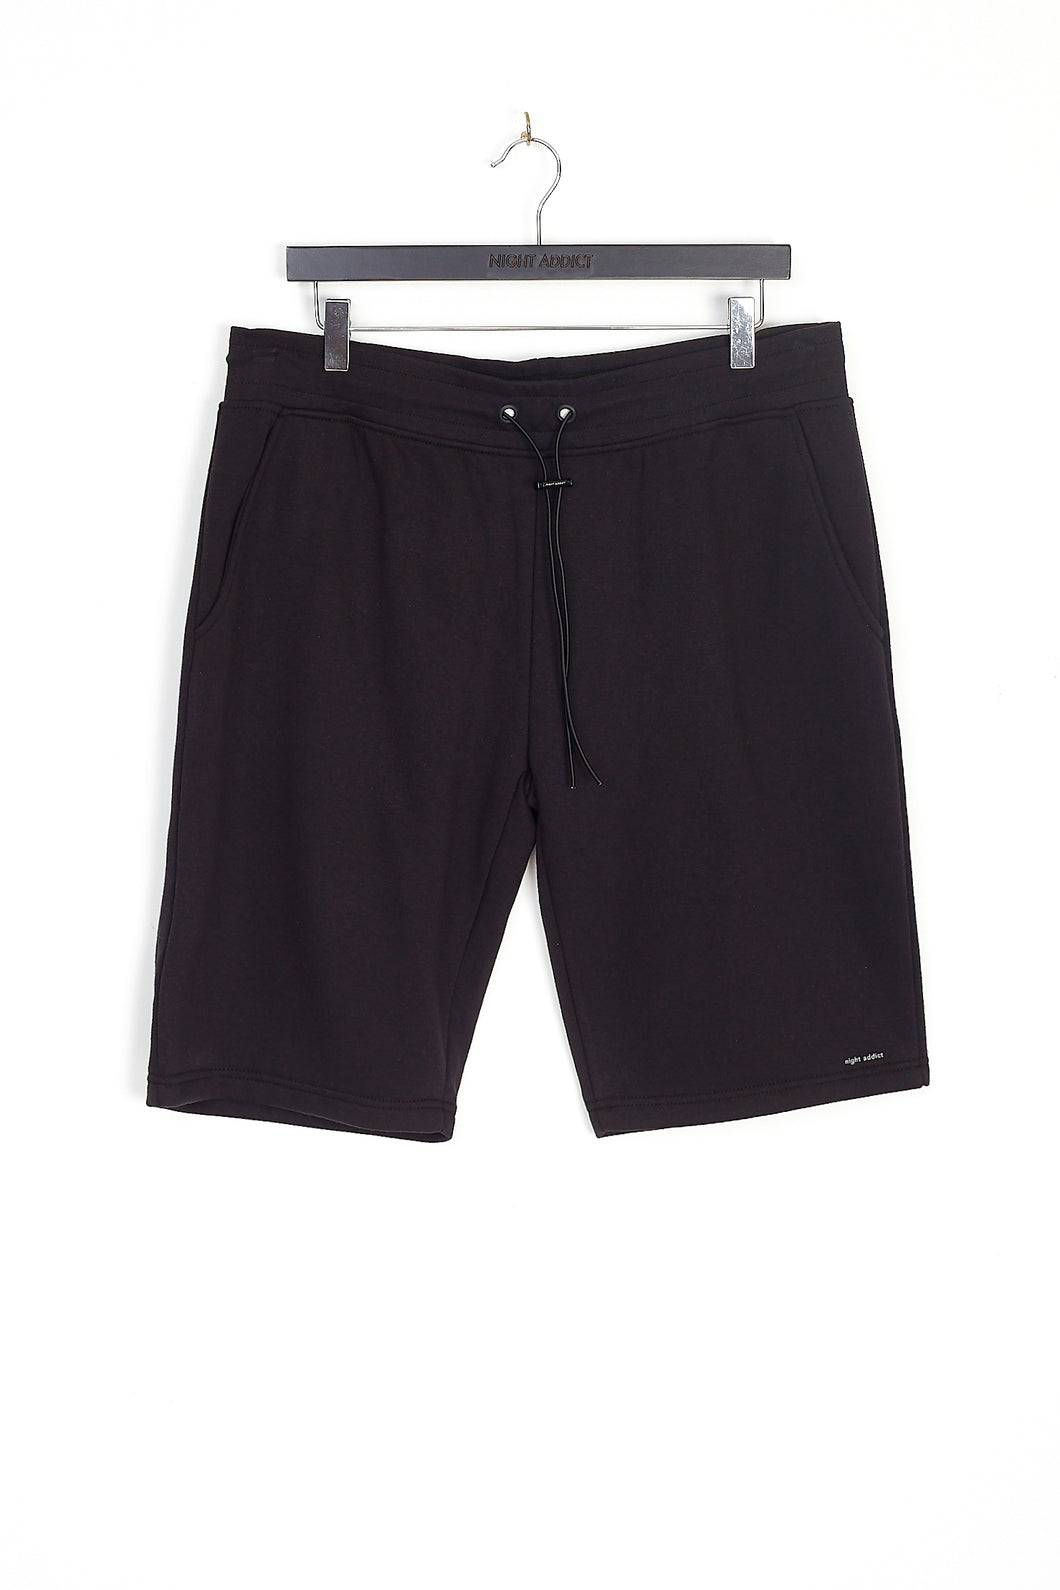 CORE SHORT - BLACK